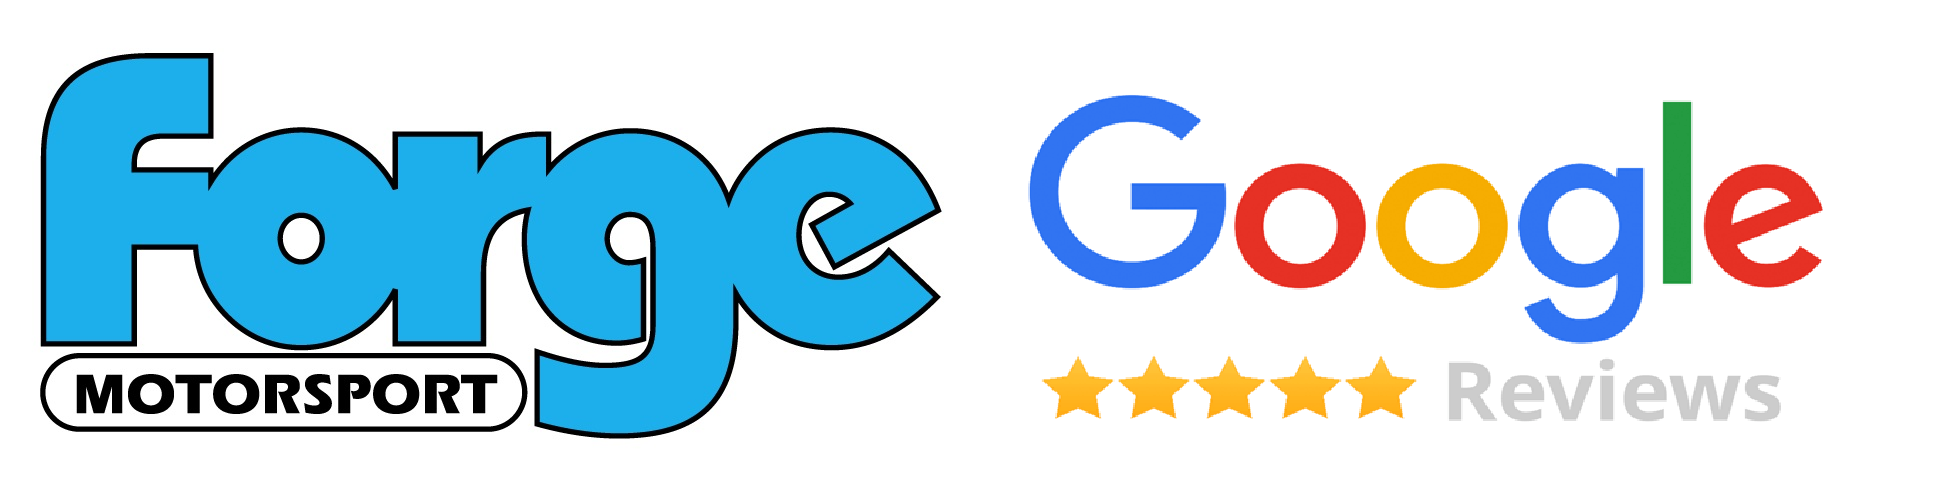 Forge Google Review